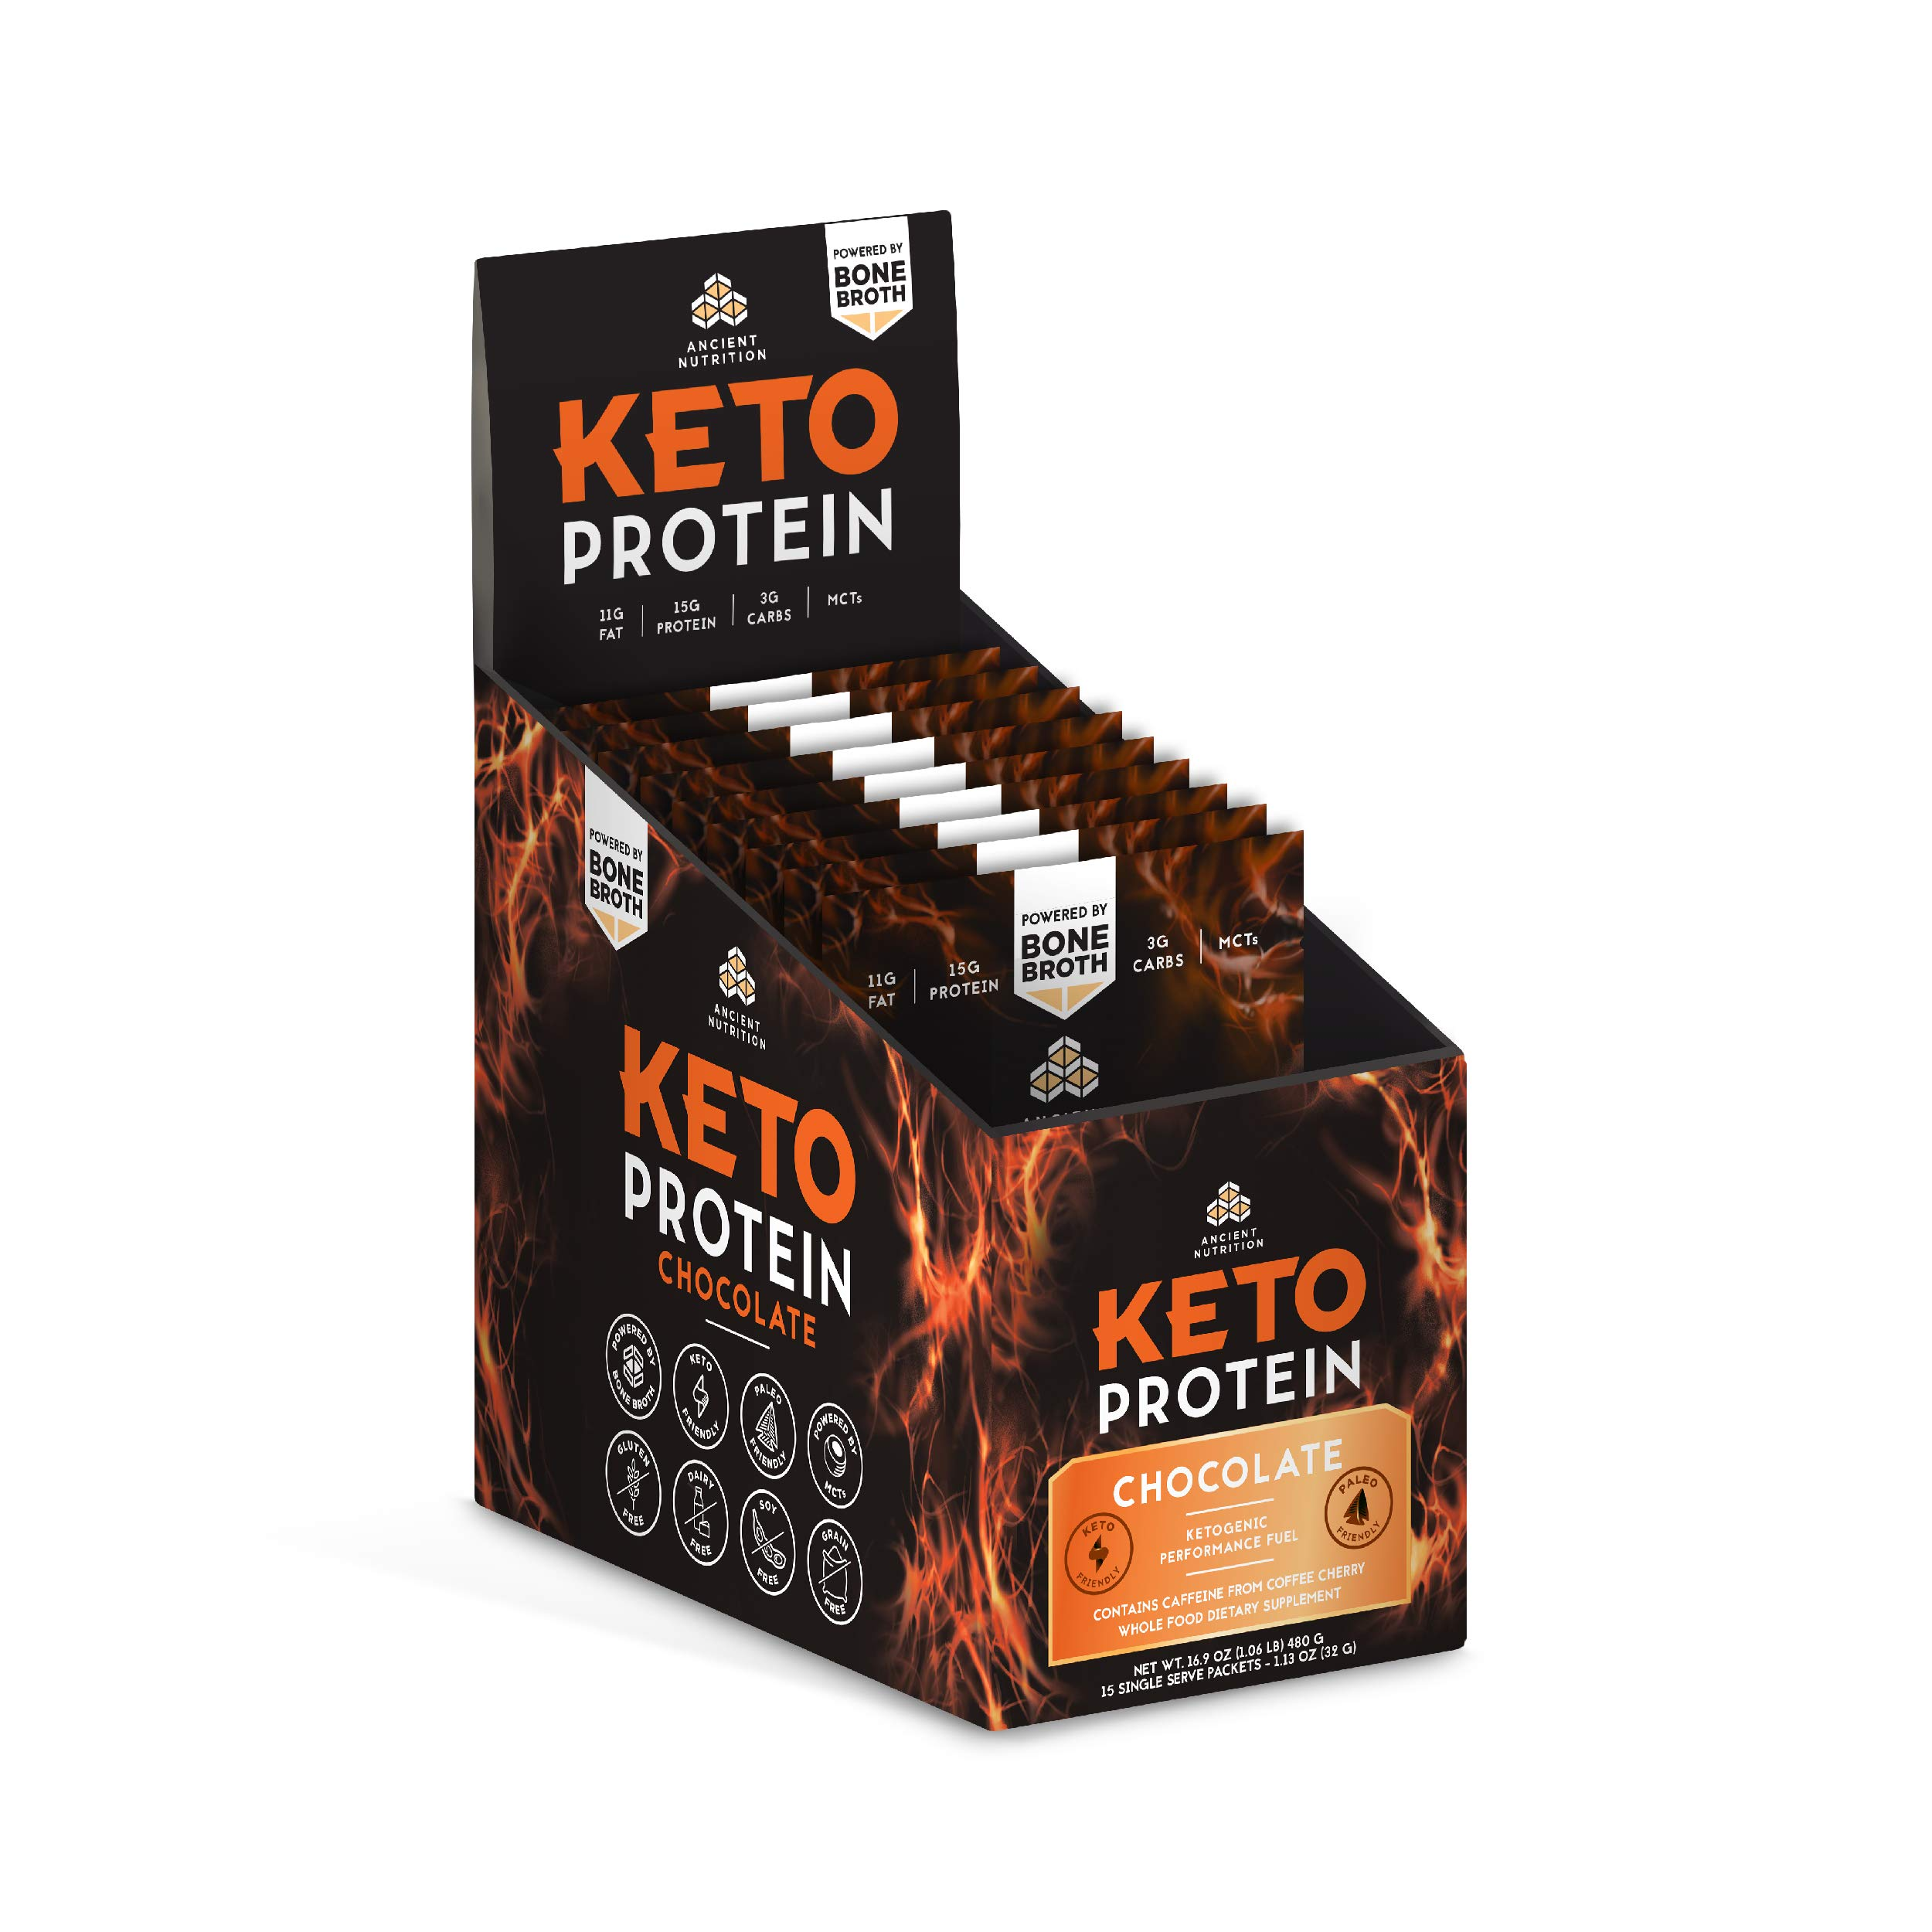 Ancient Nutrition KetoPROTEIN Powder Chocolate, 15 Servings - Keto Diet Supplement, High Quality Low Carb Proteins and Fats from Bone Broth and MCT Oil by Ancient Nutrition